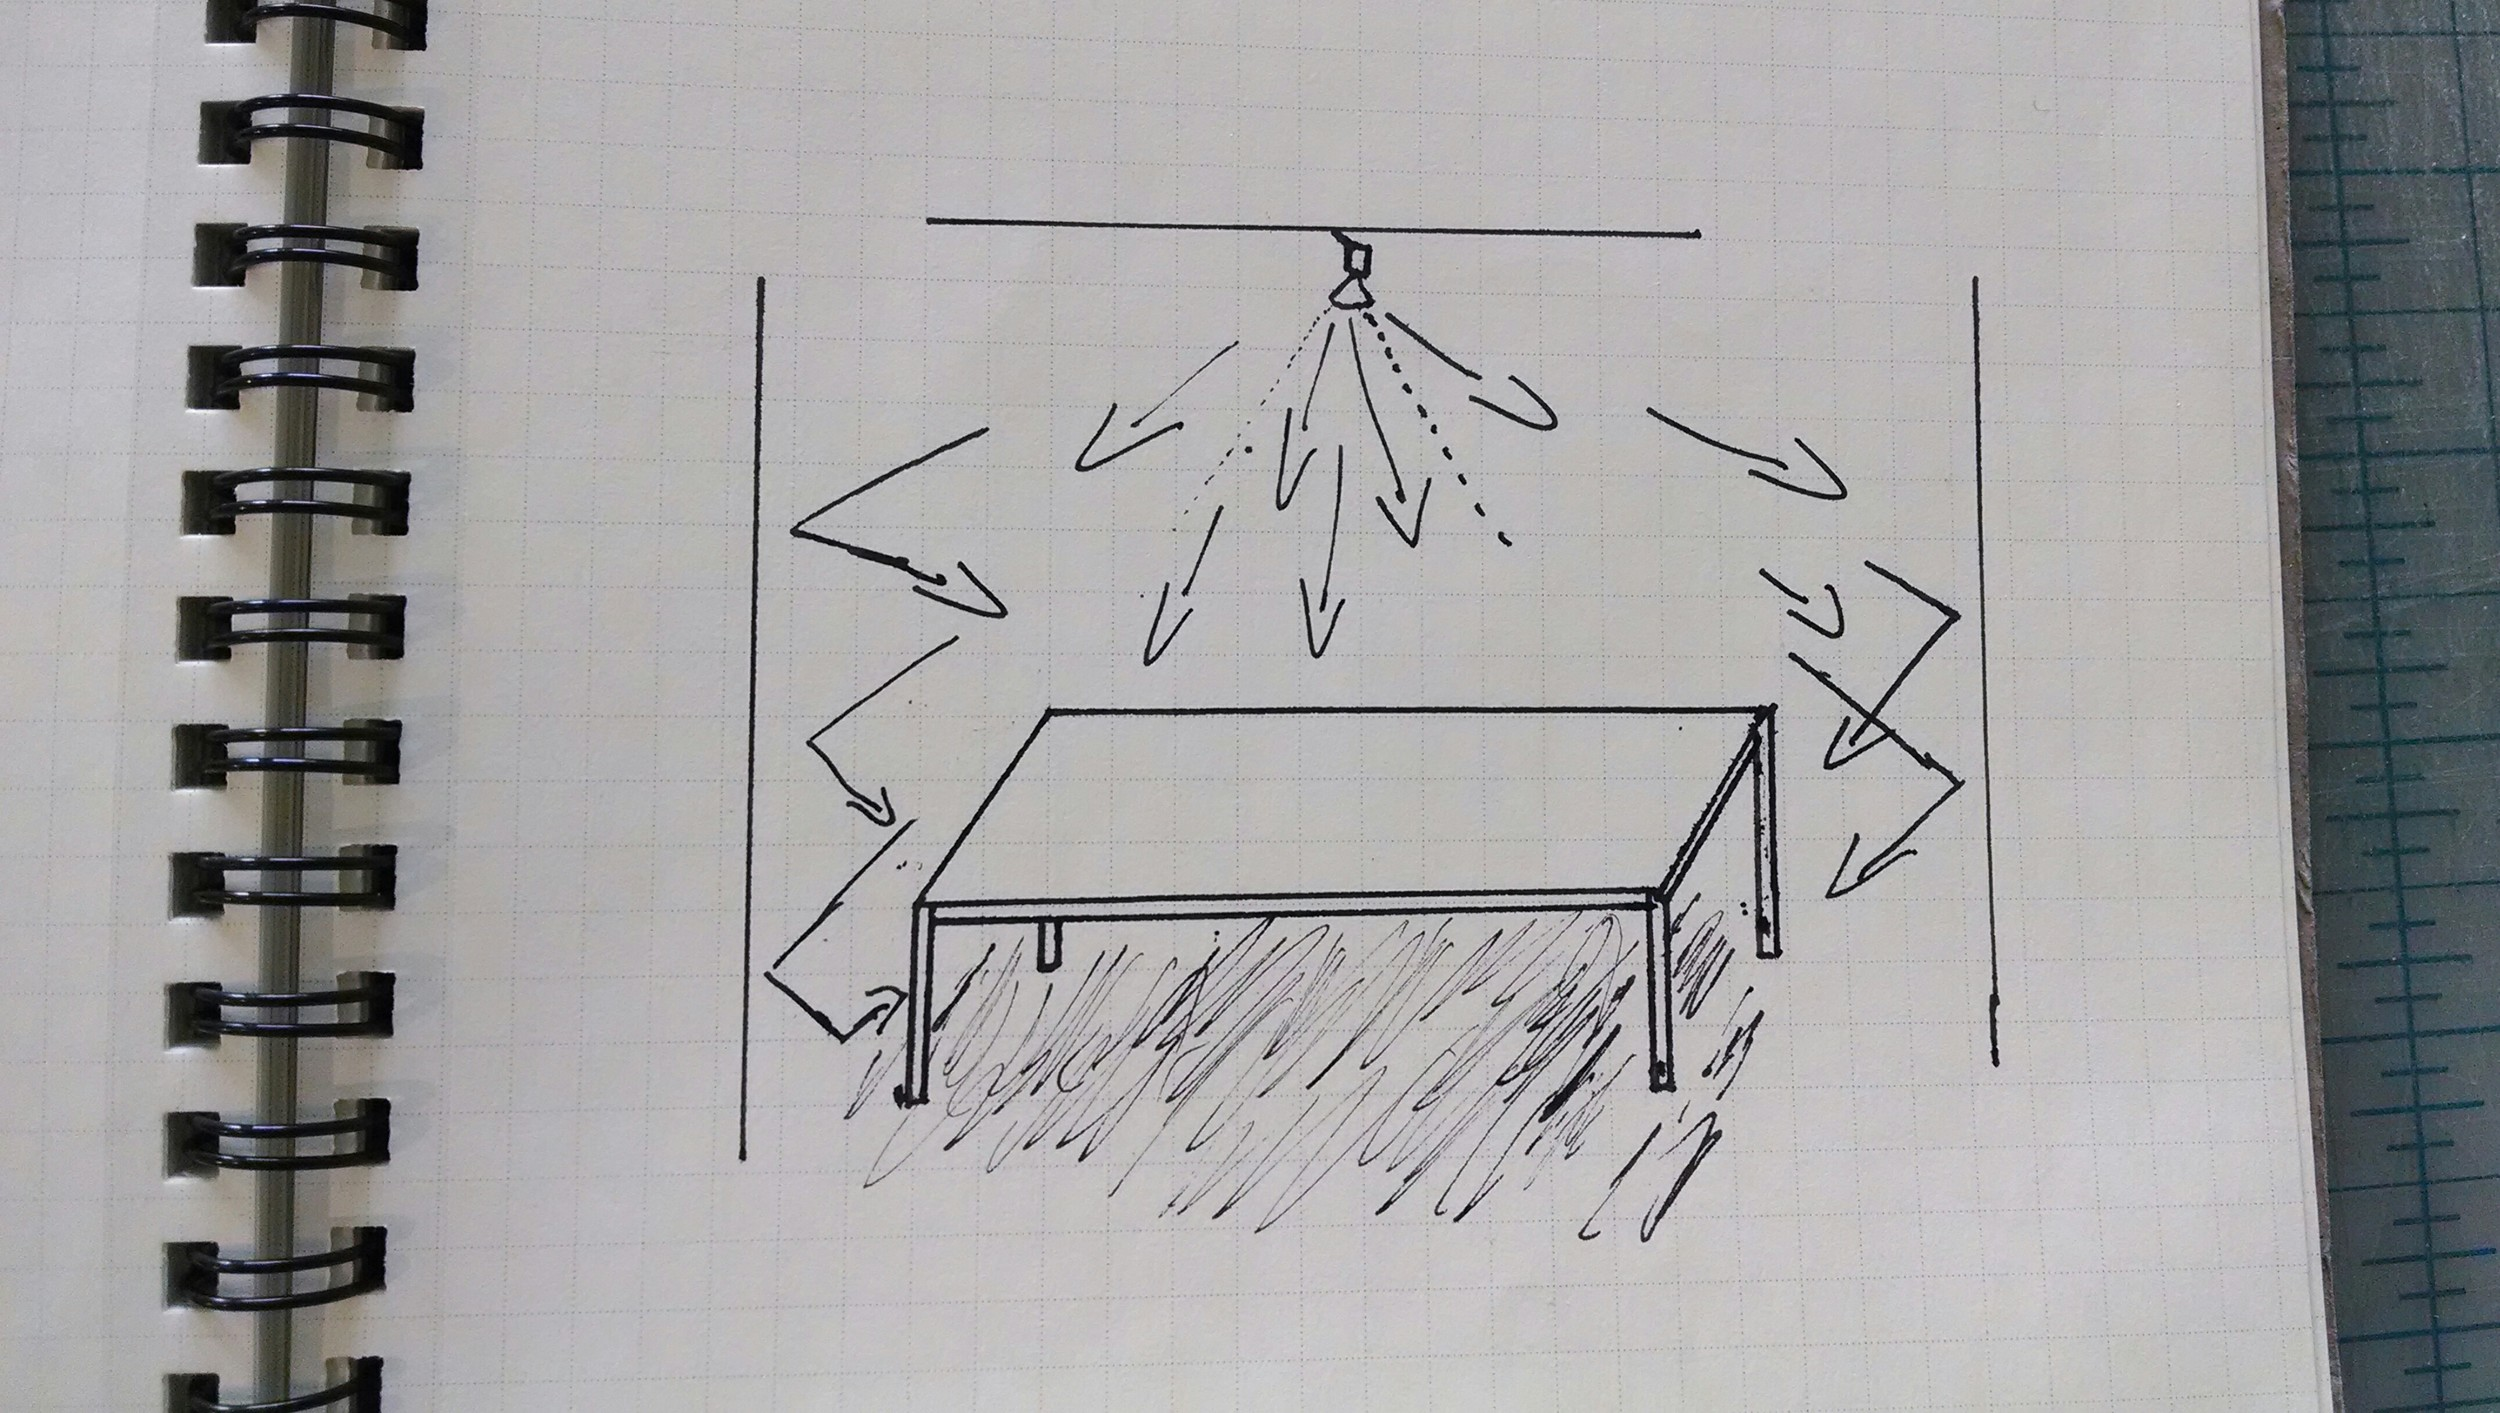 HALOGEN LIGHT GOES EVERYWHERE, SO EVEN A SOLID TABLE WILL HAVE ONLY SOFT SHADOWING BENEATH IT.